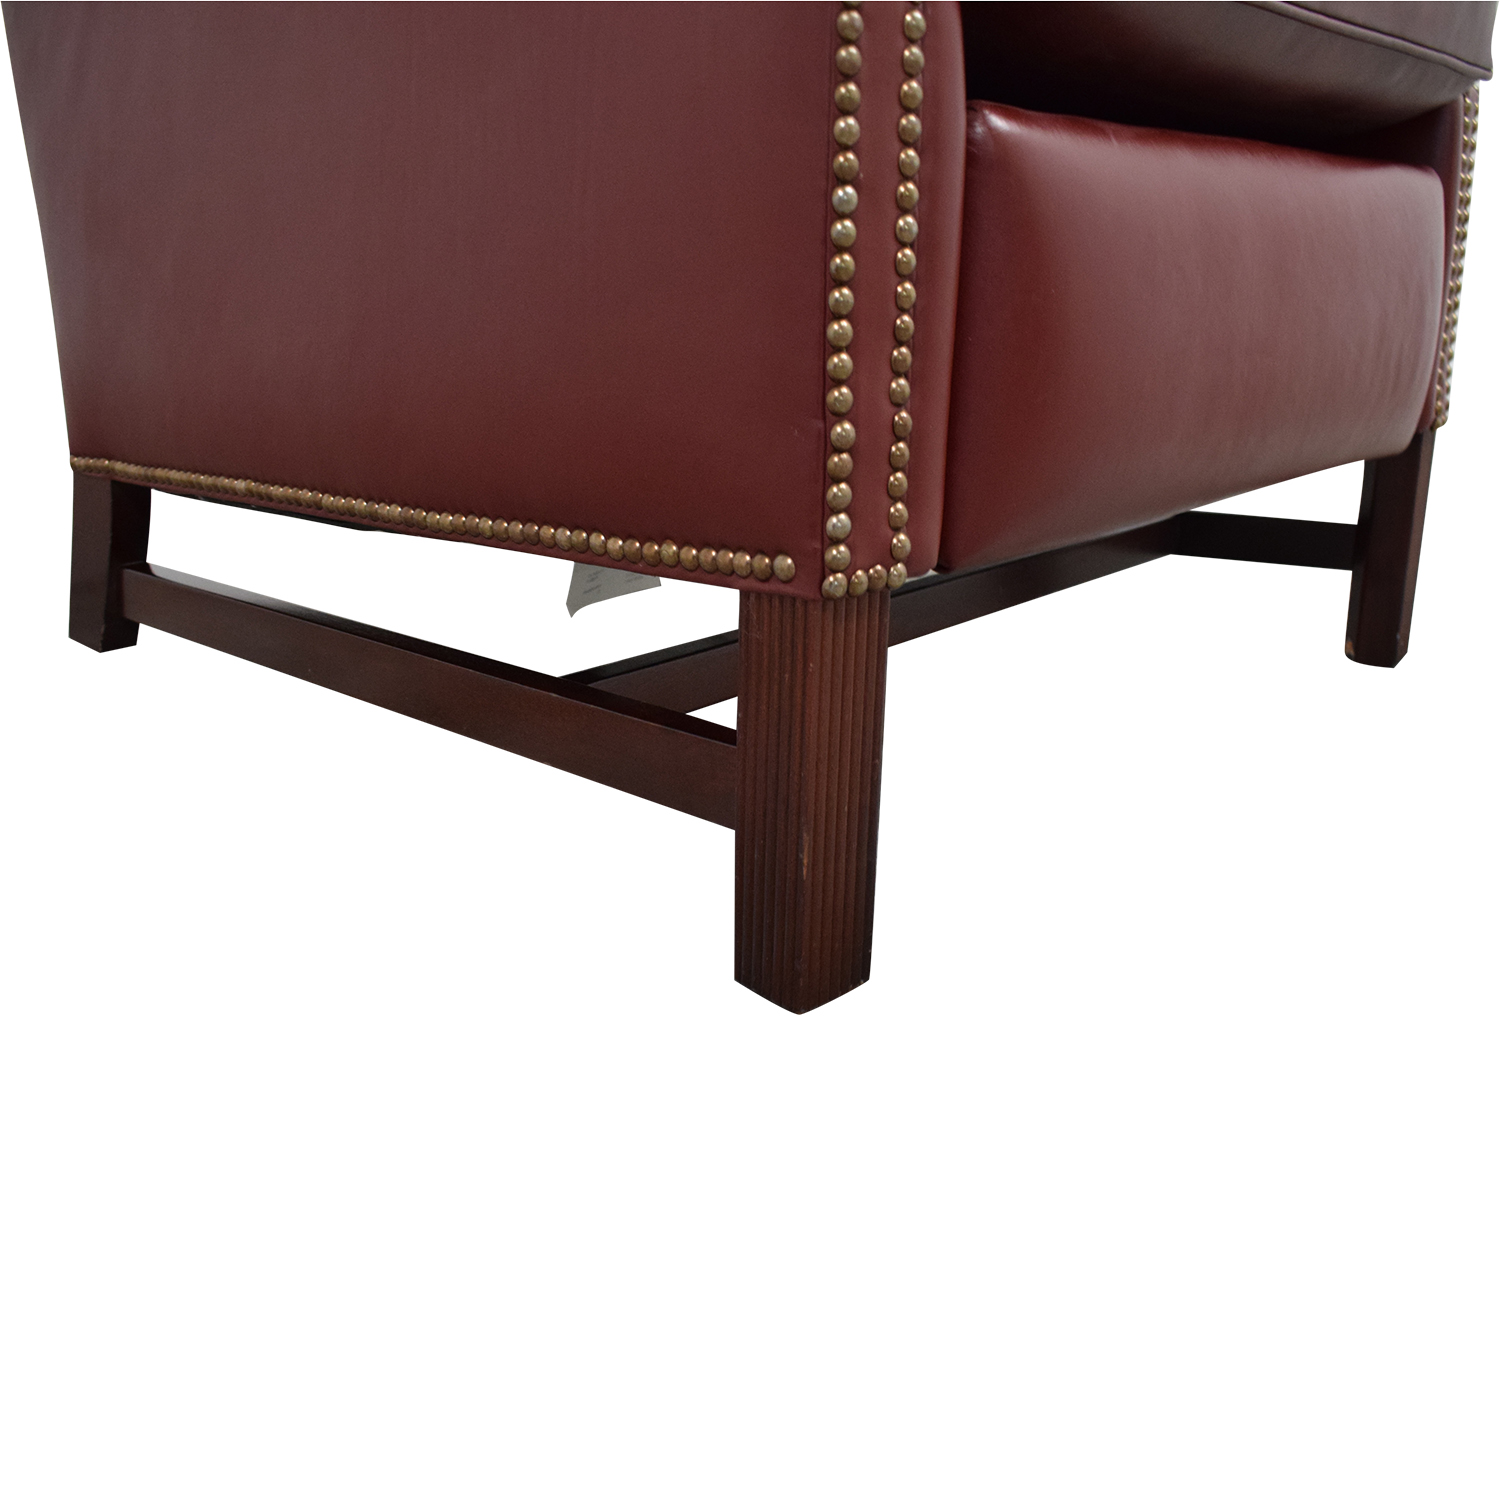 buy Classic Leather Classic Leather Recliner Chair online